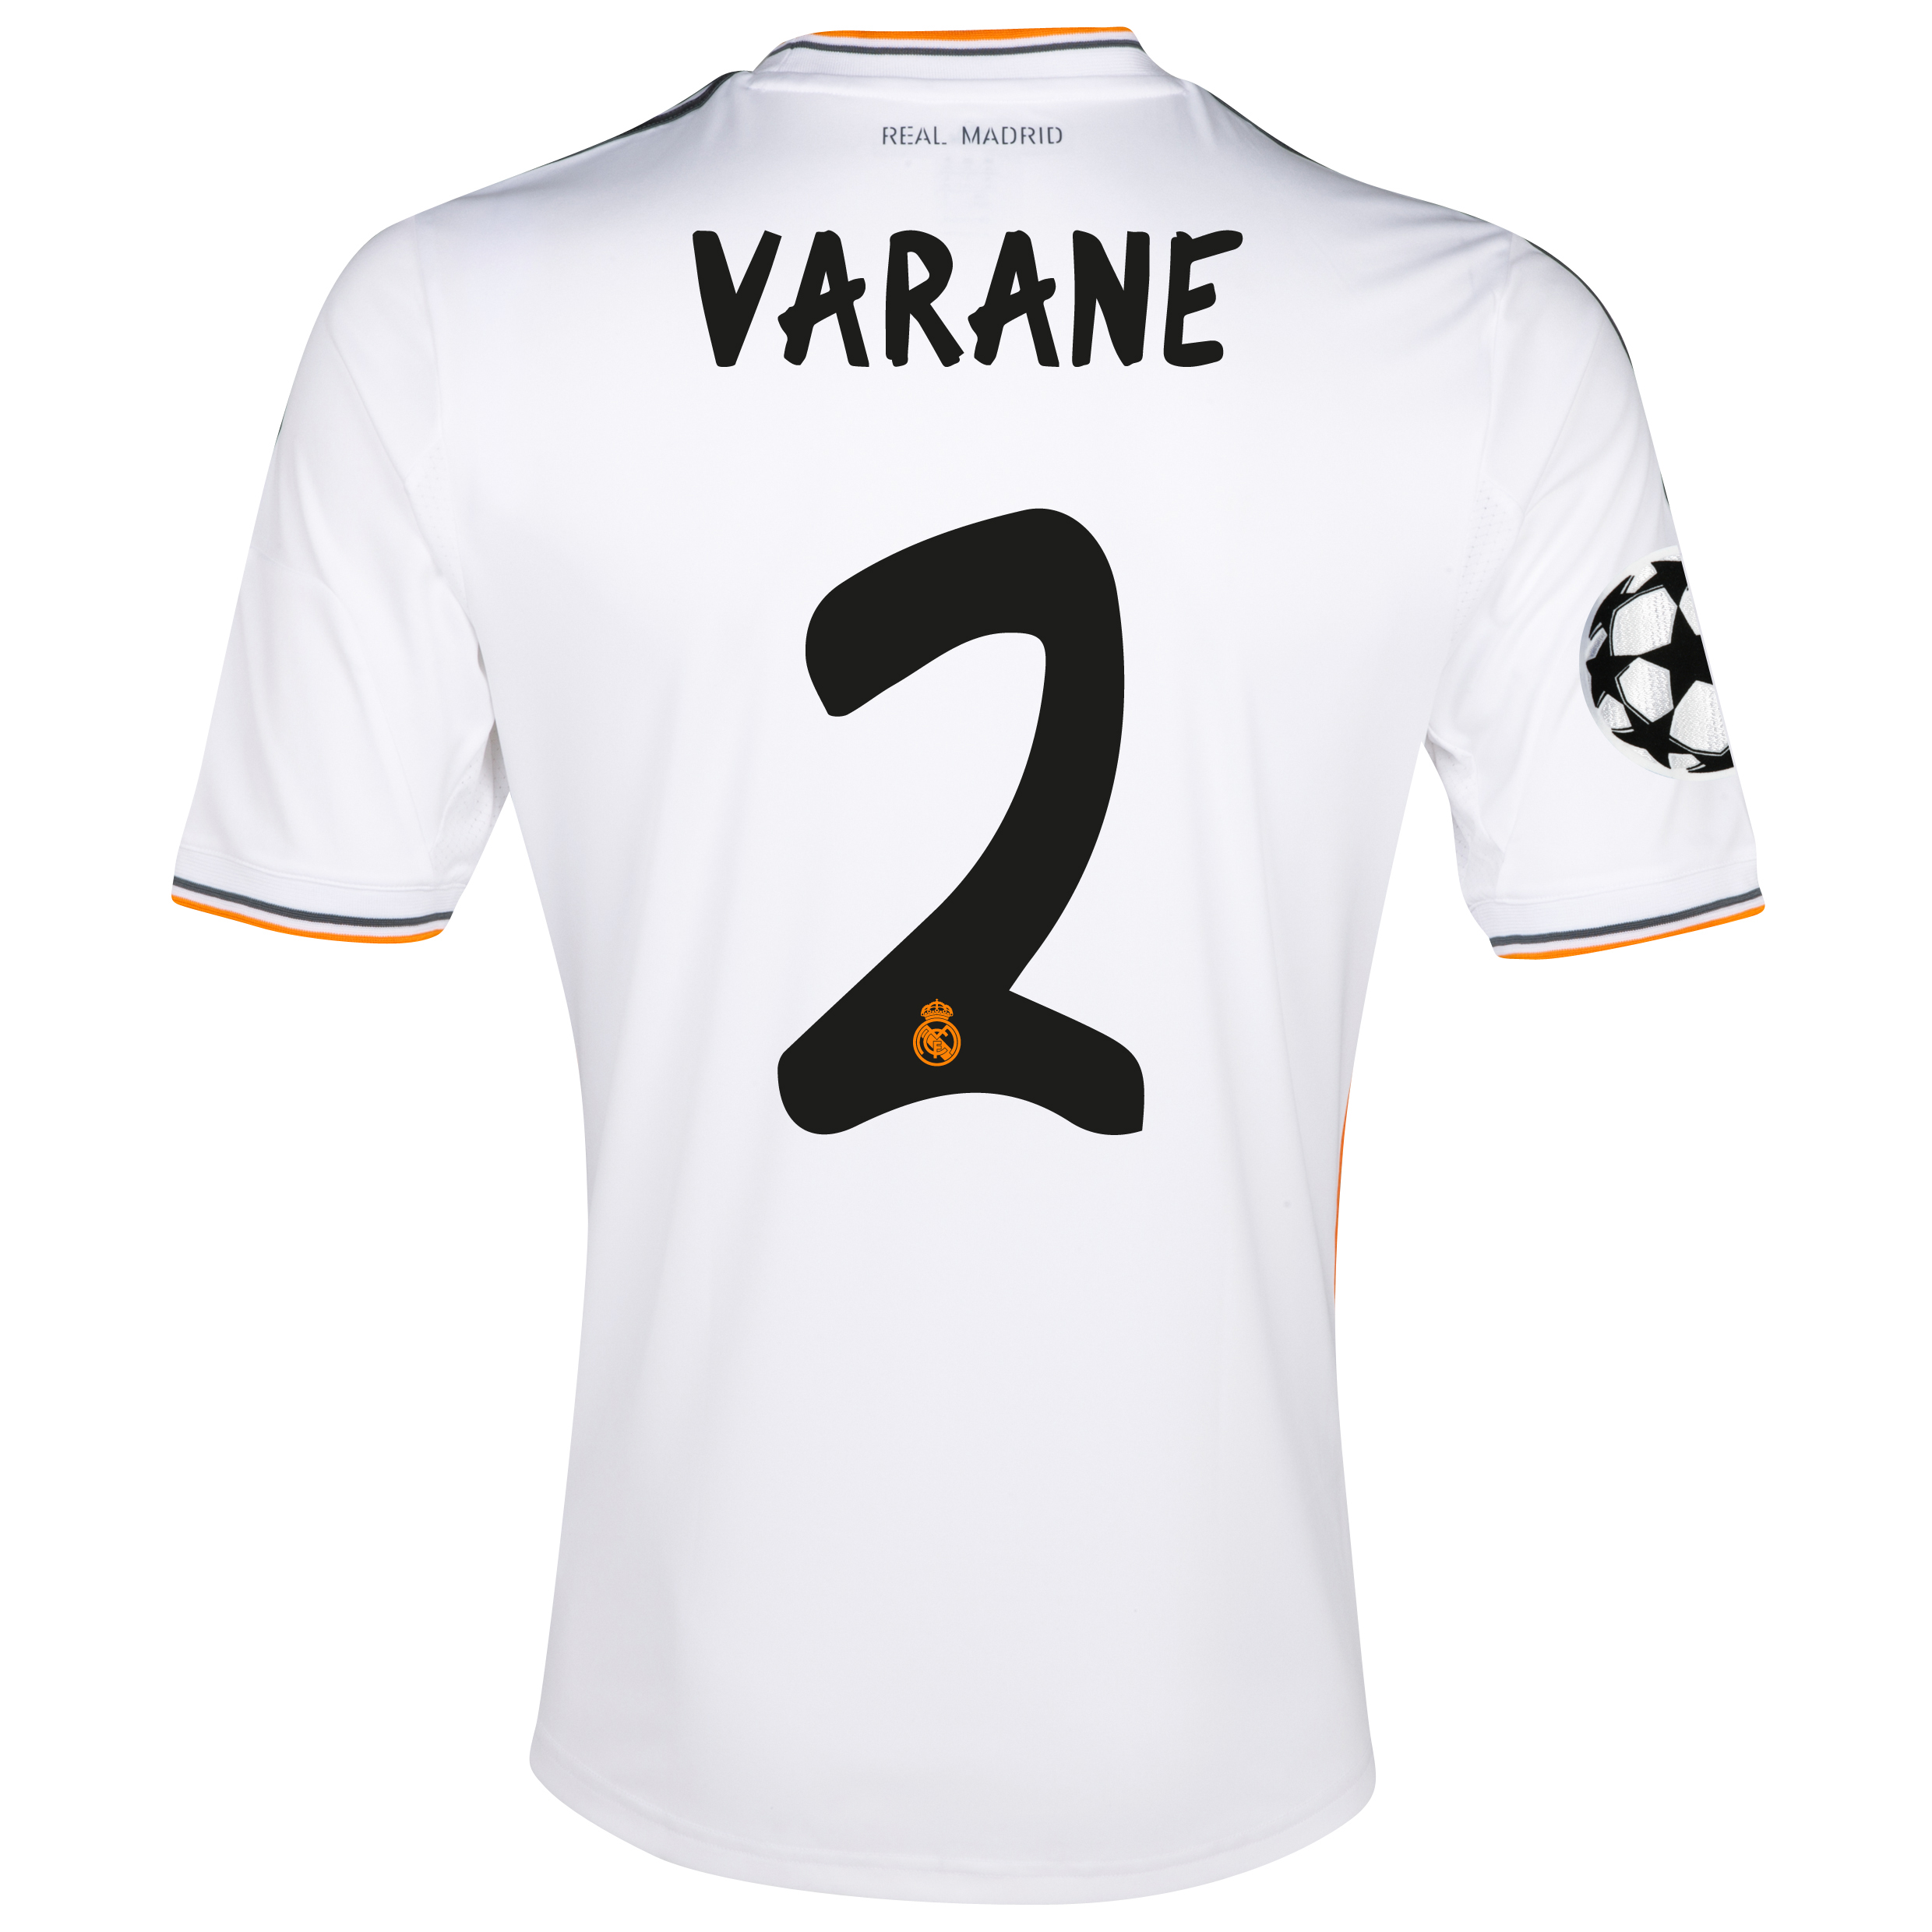 Real Madrid UEFA Champions League Home Shirt 2013/14 with Varane 2 printing